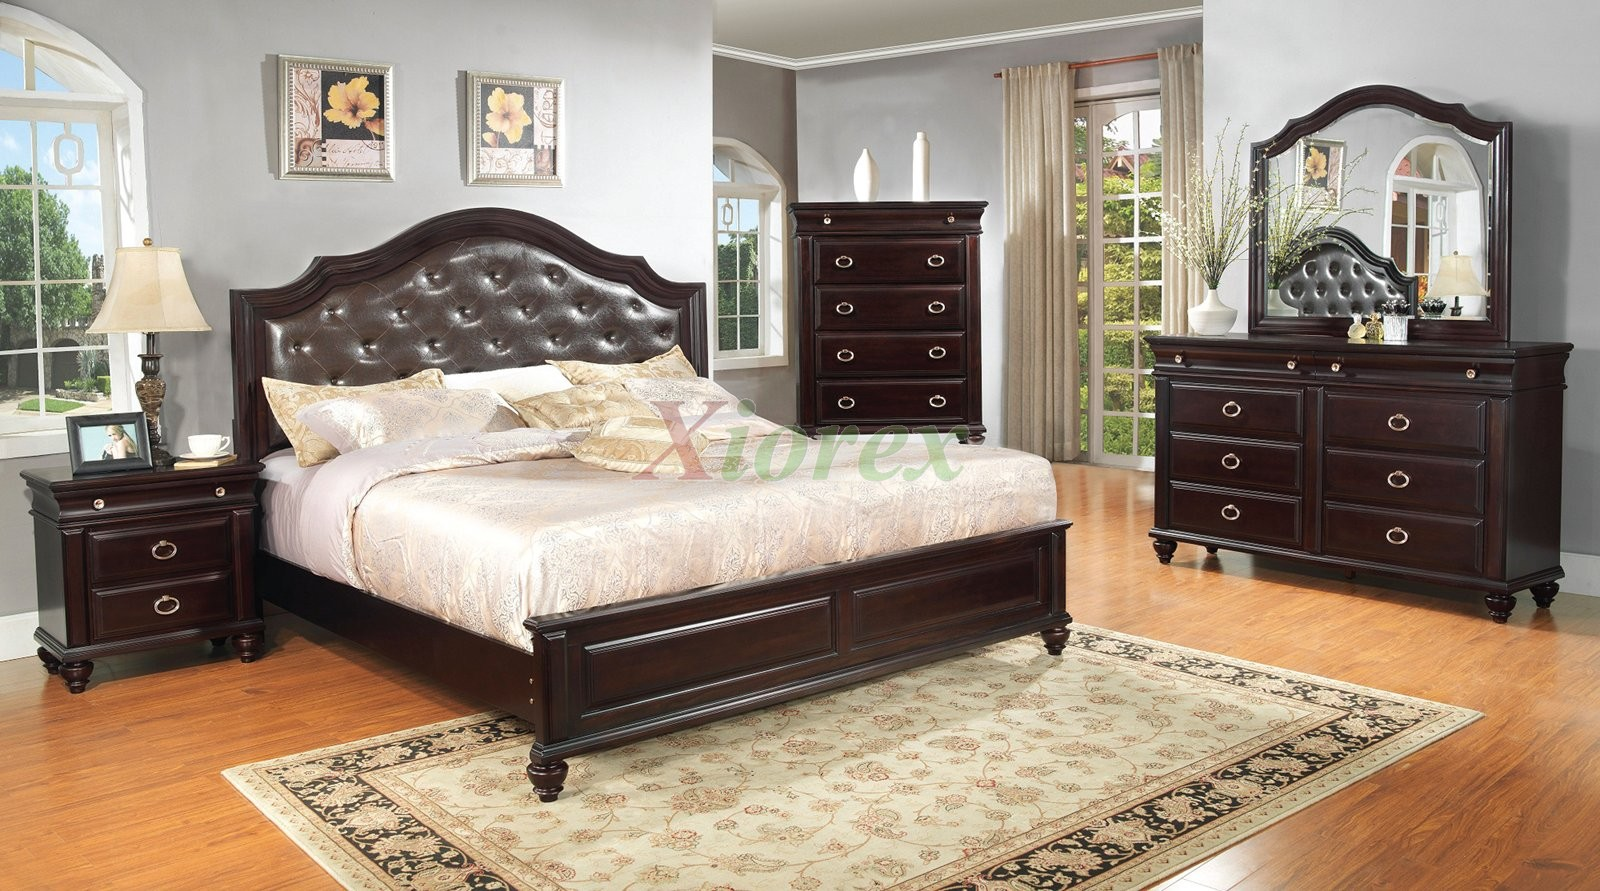 Bedroom Sets Erie Pa platform bedroom furniture set with leather headboard 135 xiorex